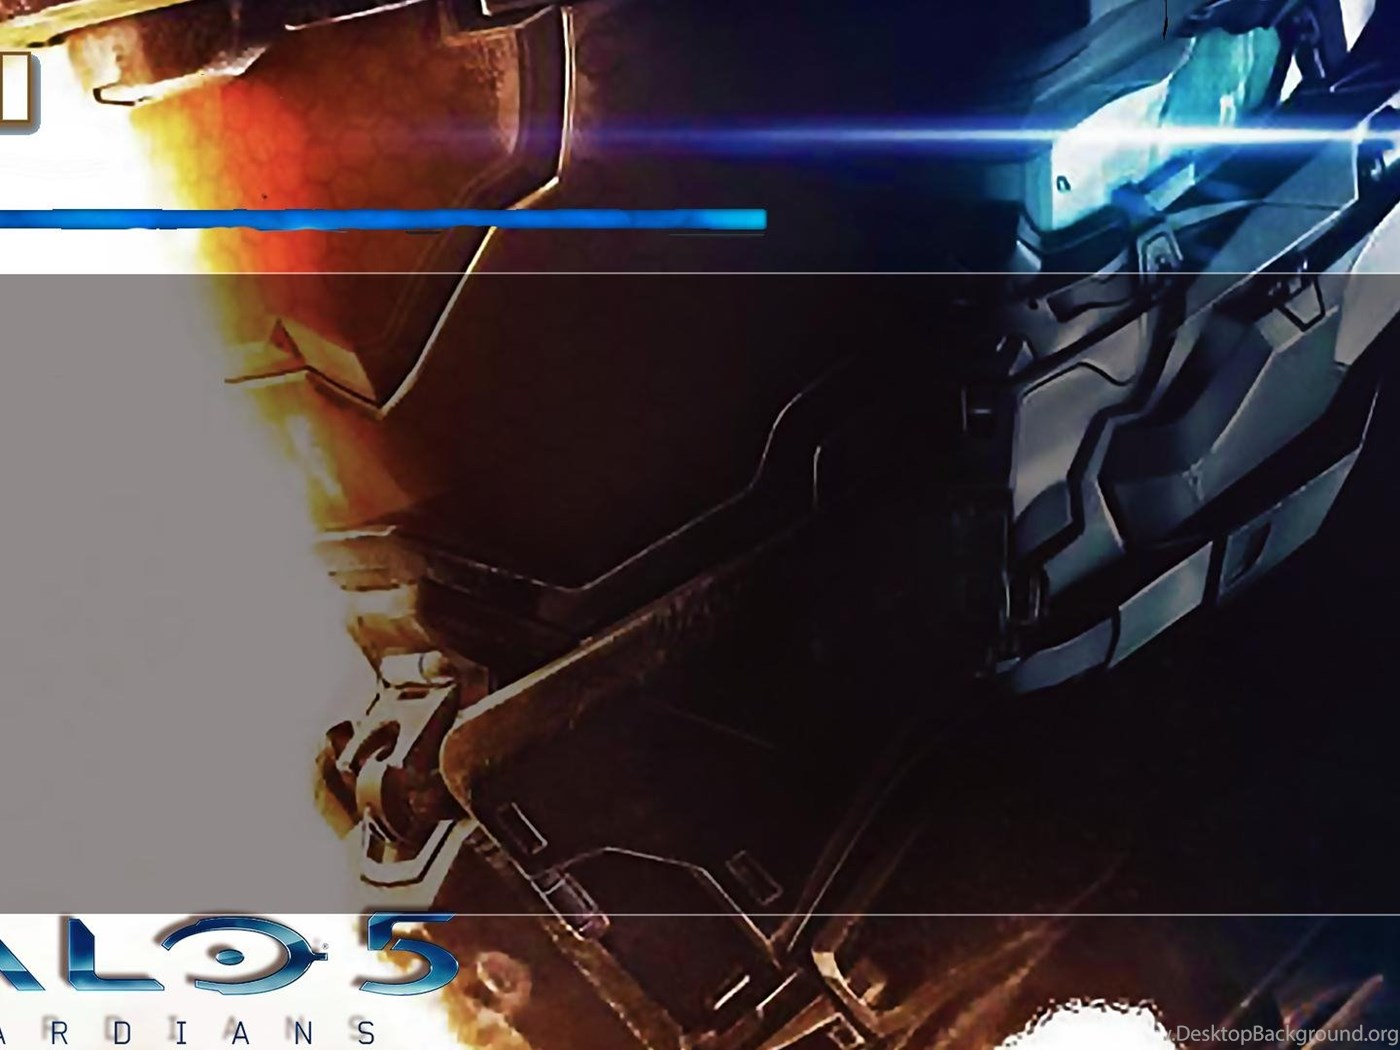 Halo 5 Gamestop Poster Theme : XboxThemes Desktop Background